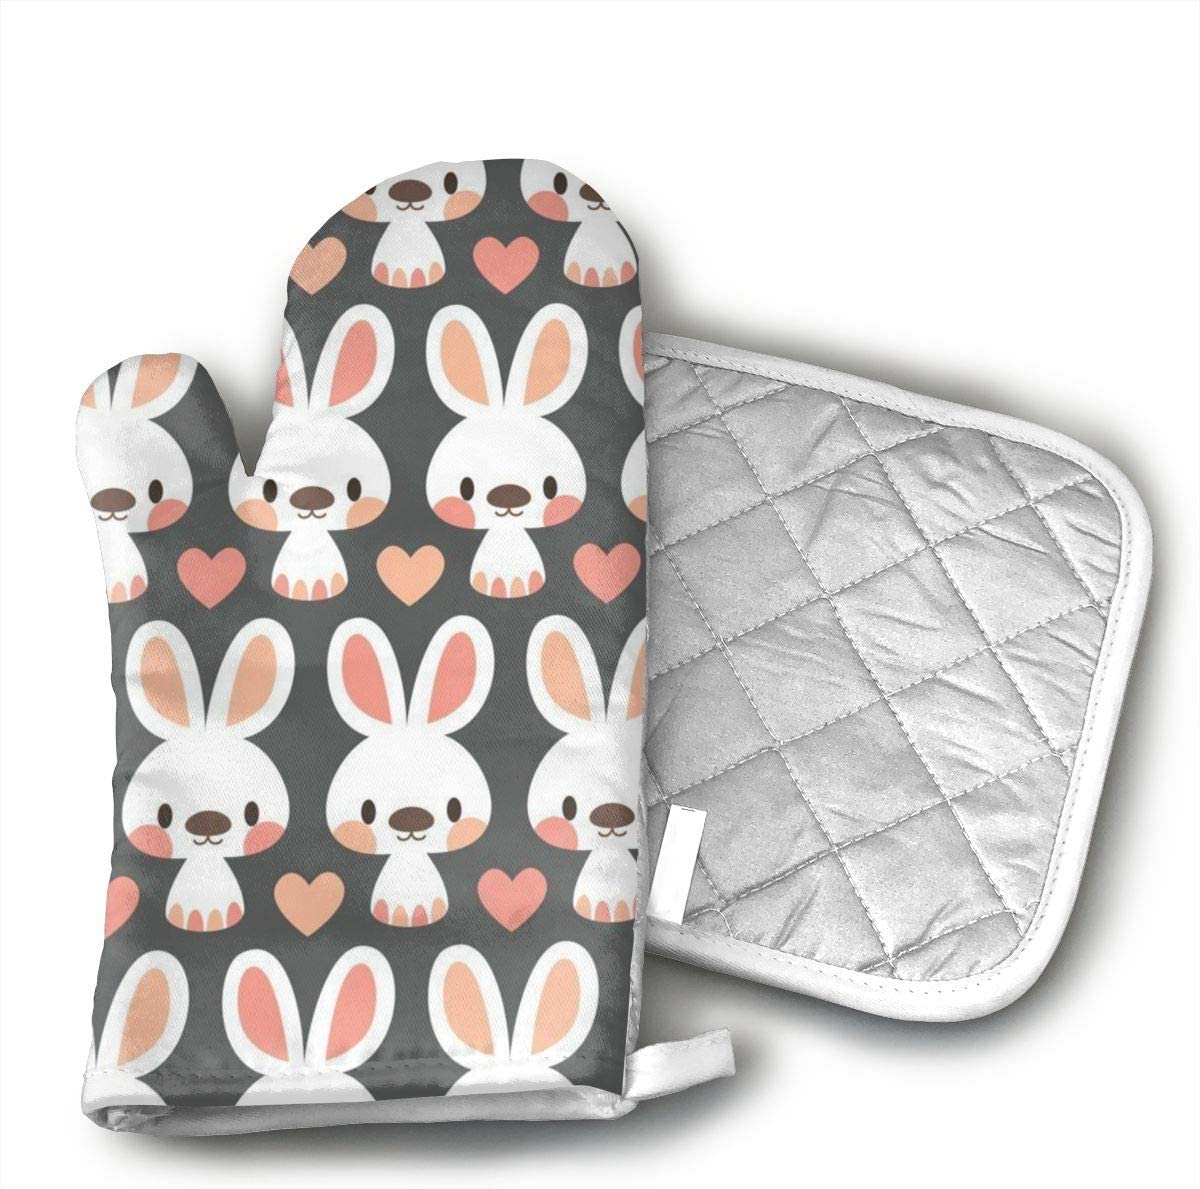 Cute Little Bunnies Oven Mitts and Potholders (2-Piece Sets) - Kitchen Set with Cotton Heat Resistant,Oven Gloves for BBQ Cooking Baking Grilling